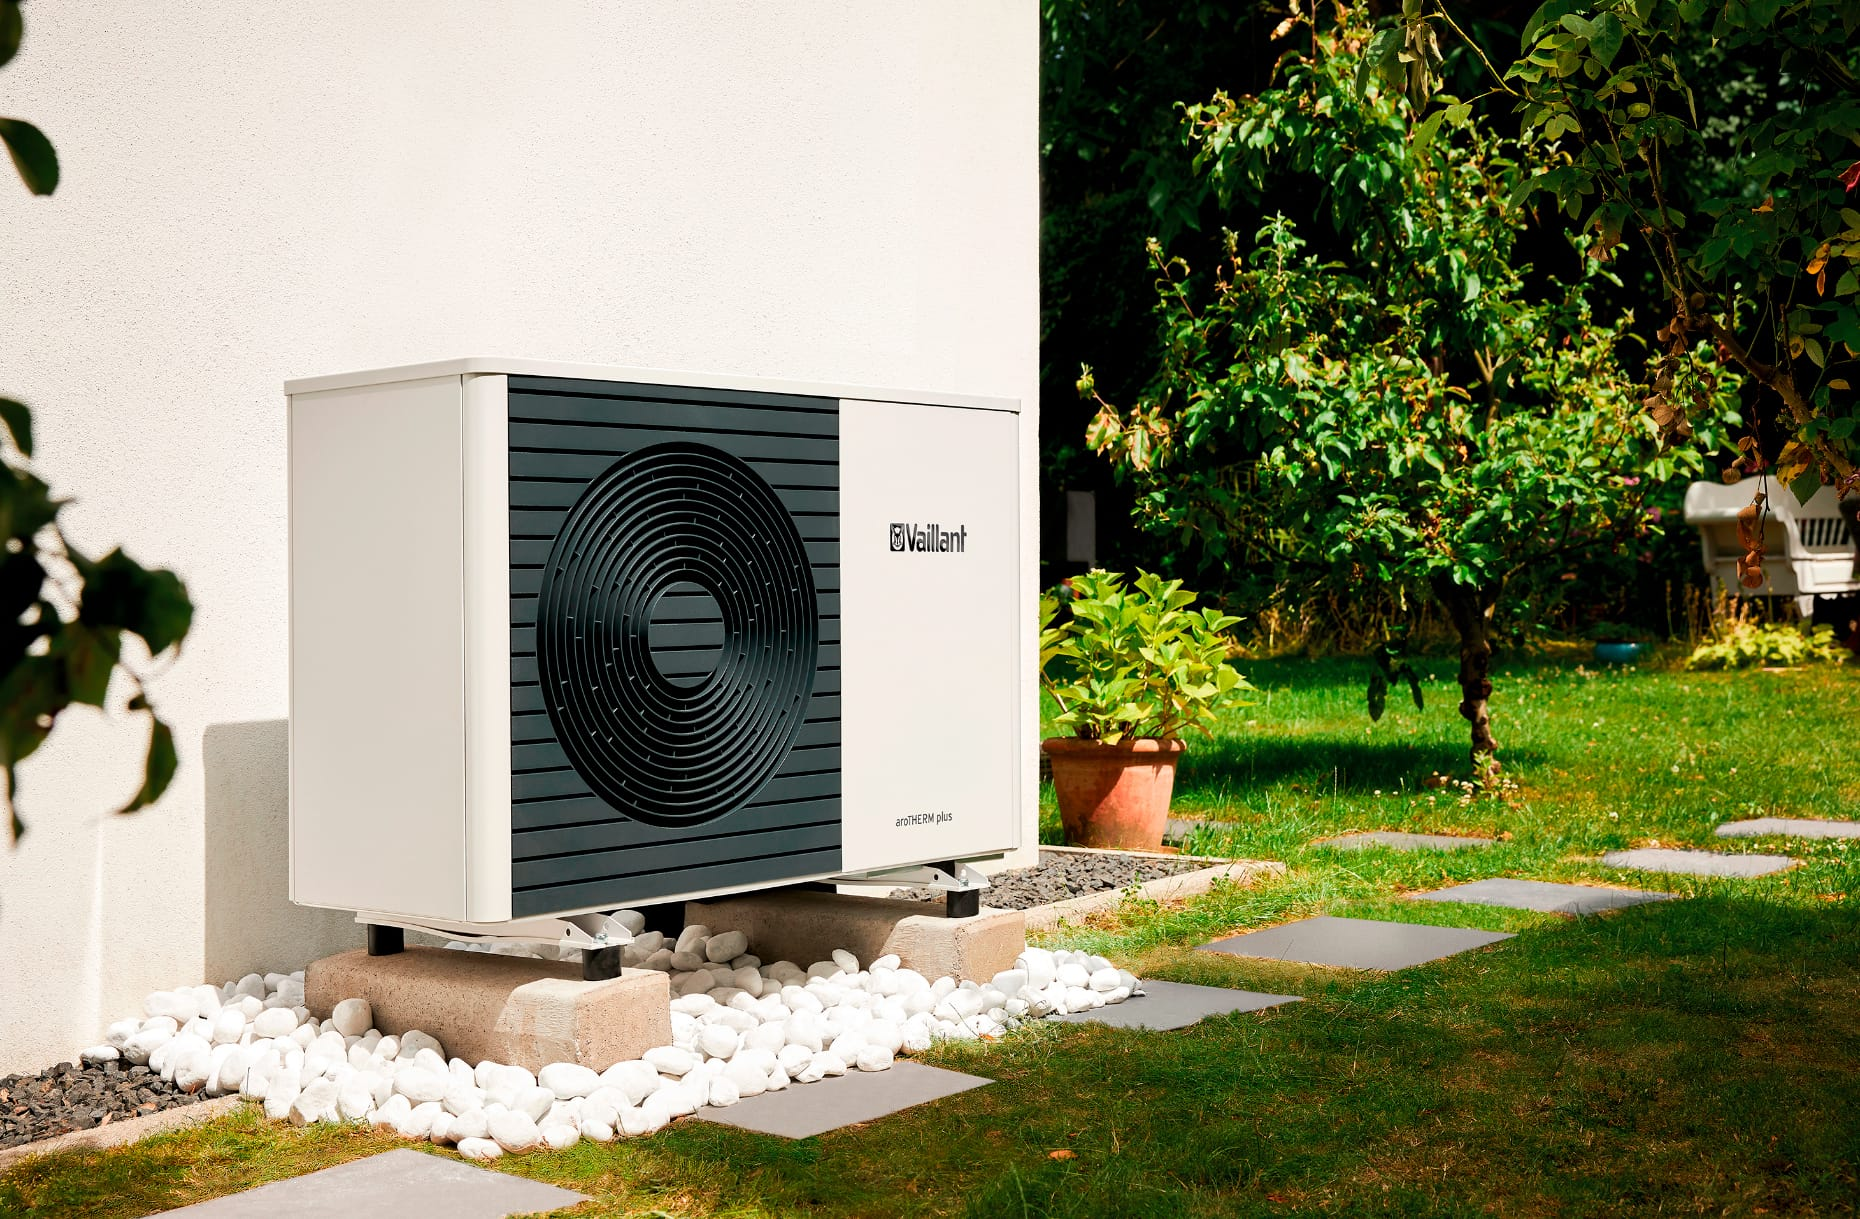 Sustainable alternatives to gas boilers